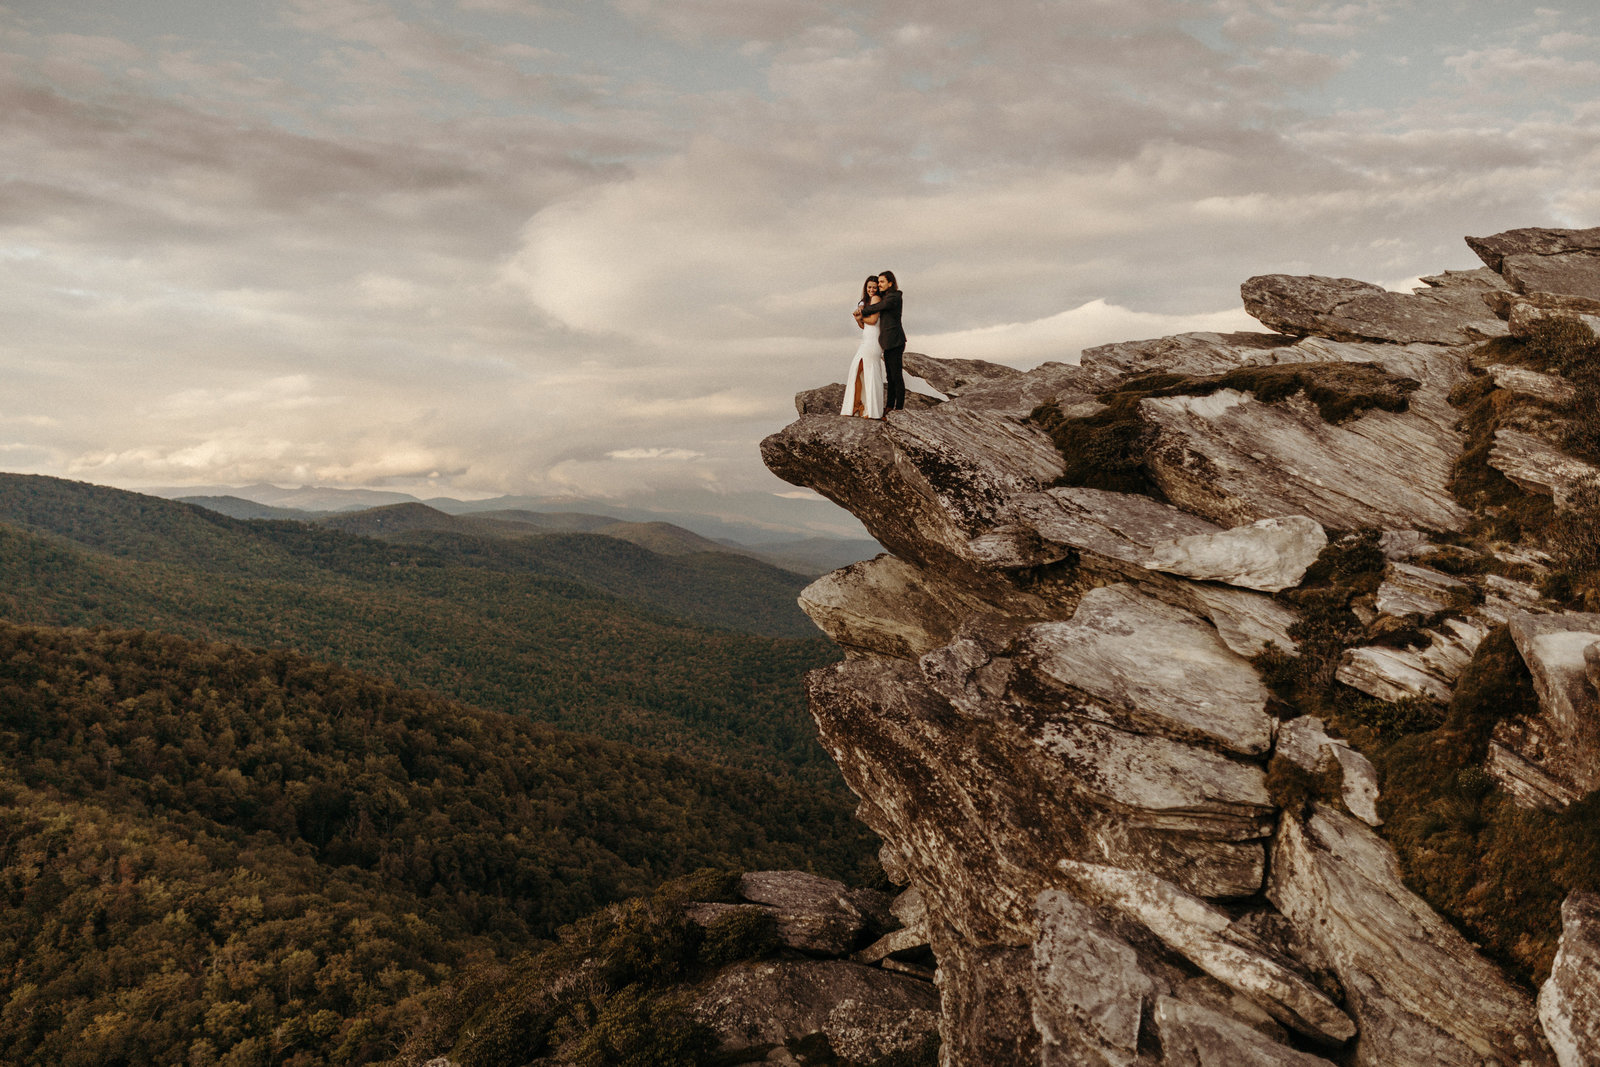 Destination-Mountains-Elopement-Appalachians-Asheville-Wedding-Photographer-Adventure-Engagement-1